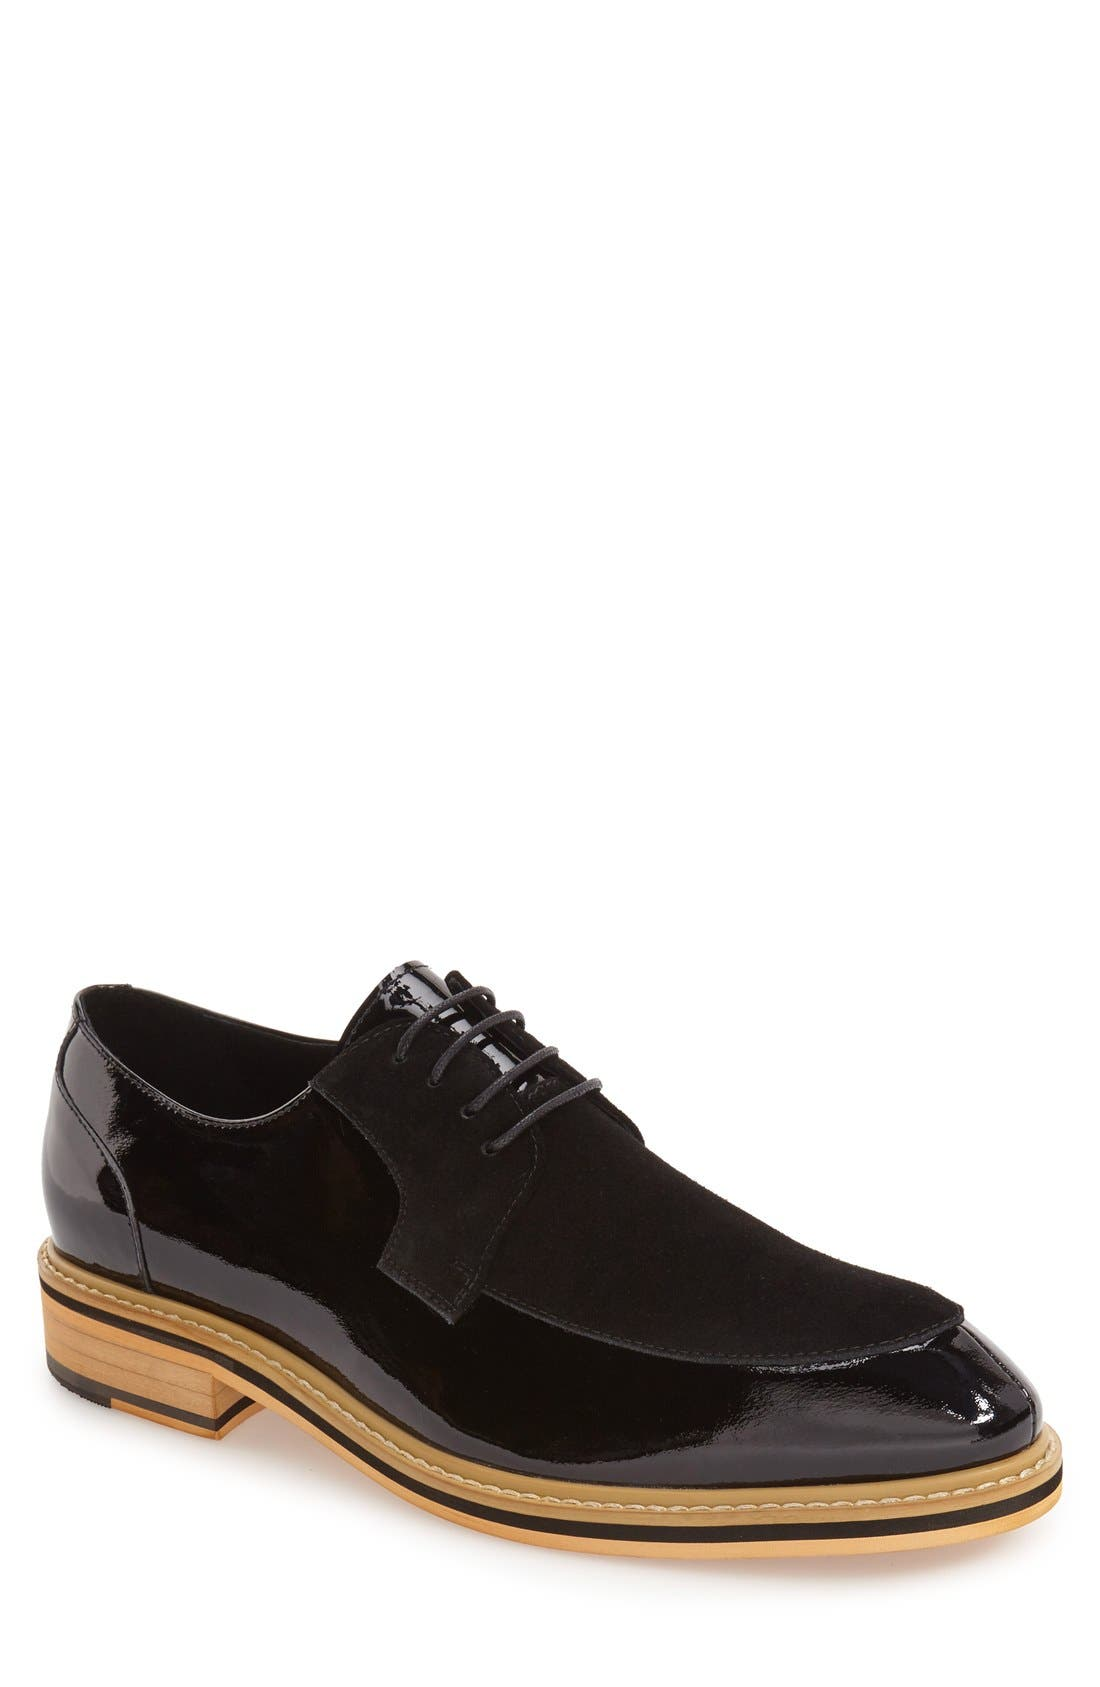 Zanzara 'Botticelli' Split Toe Derby (Men)